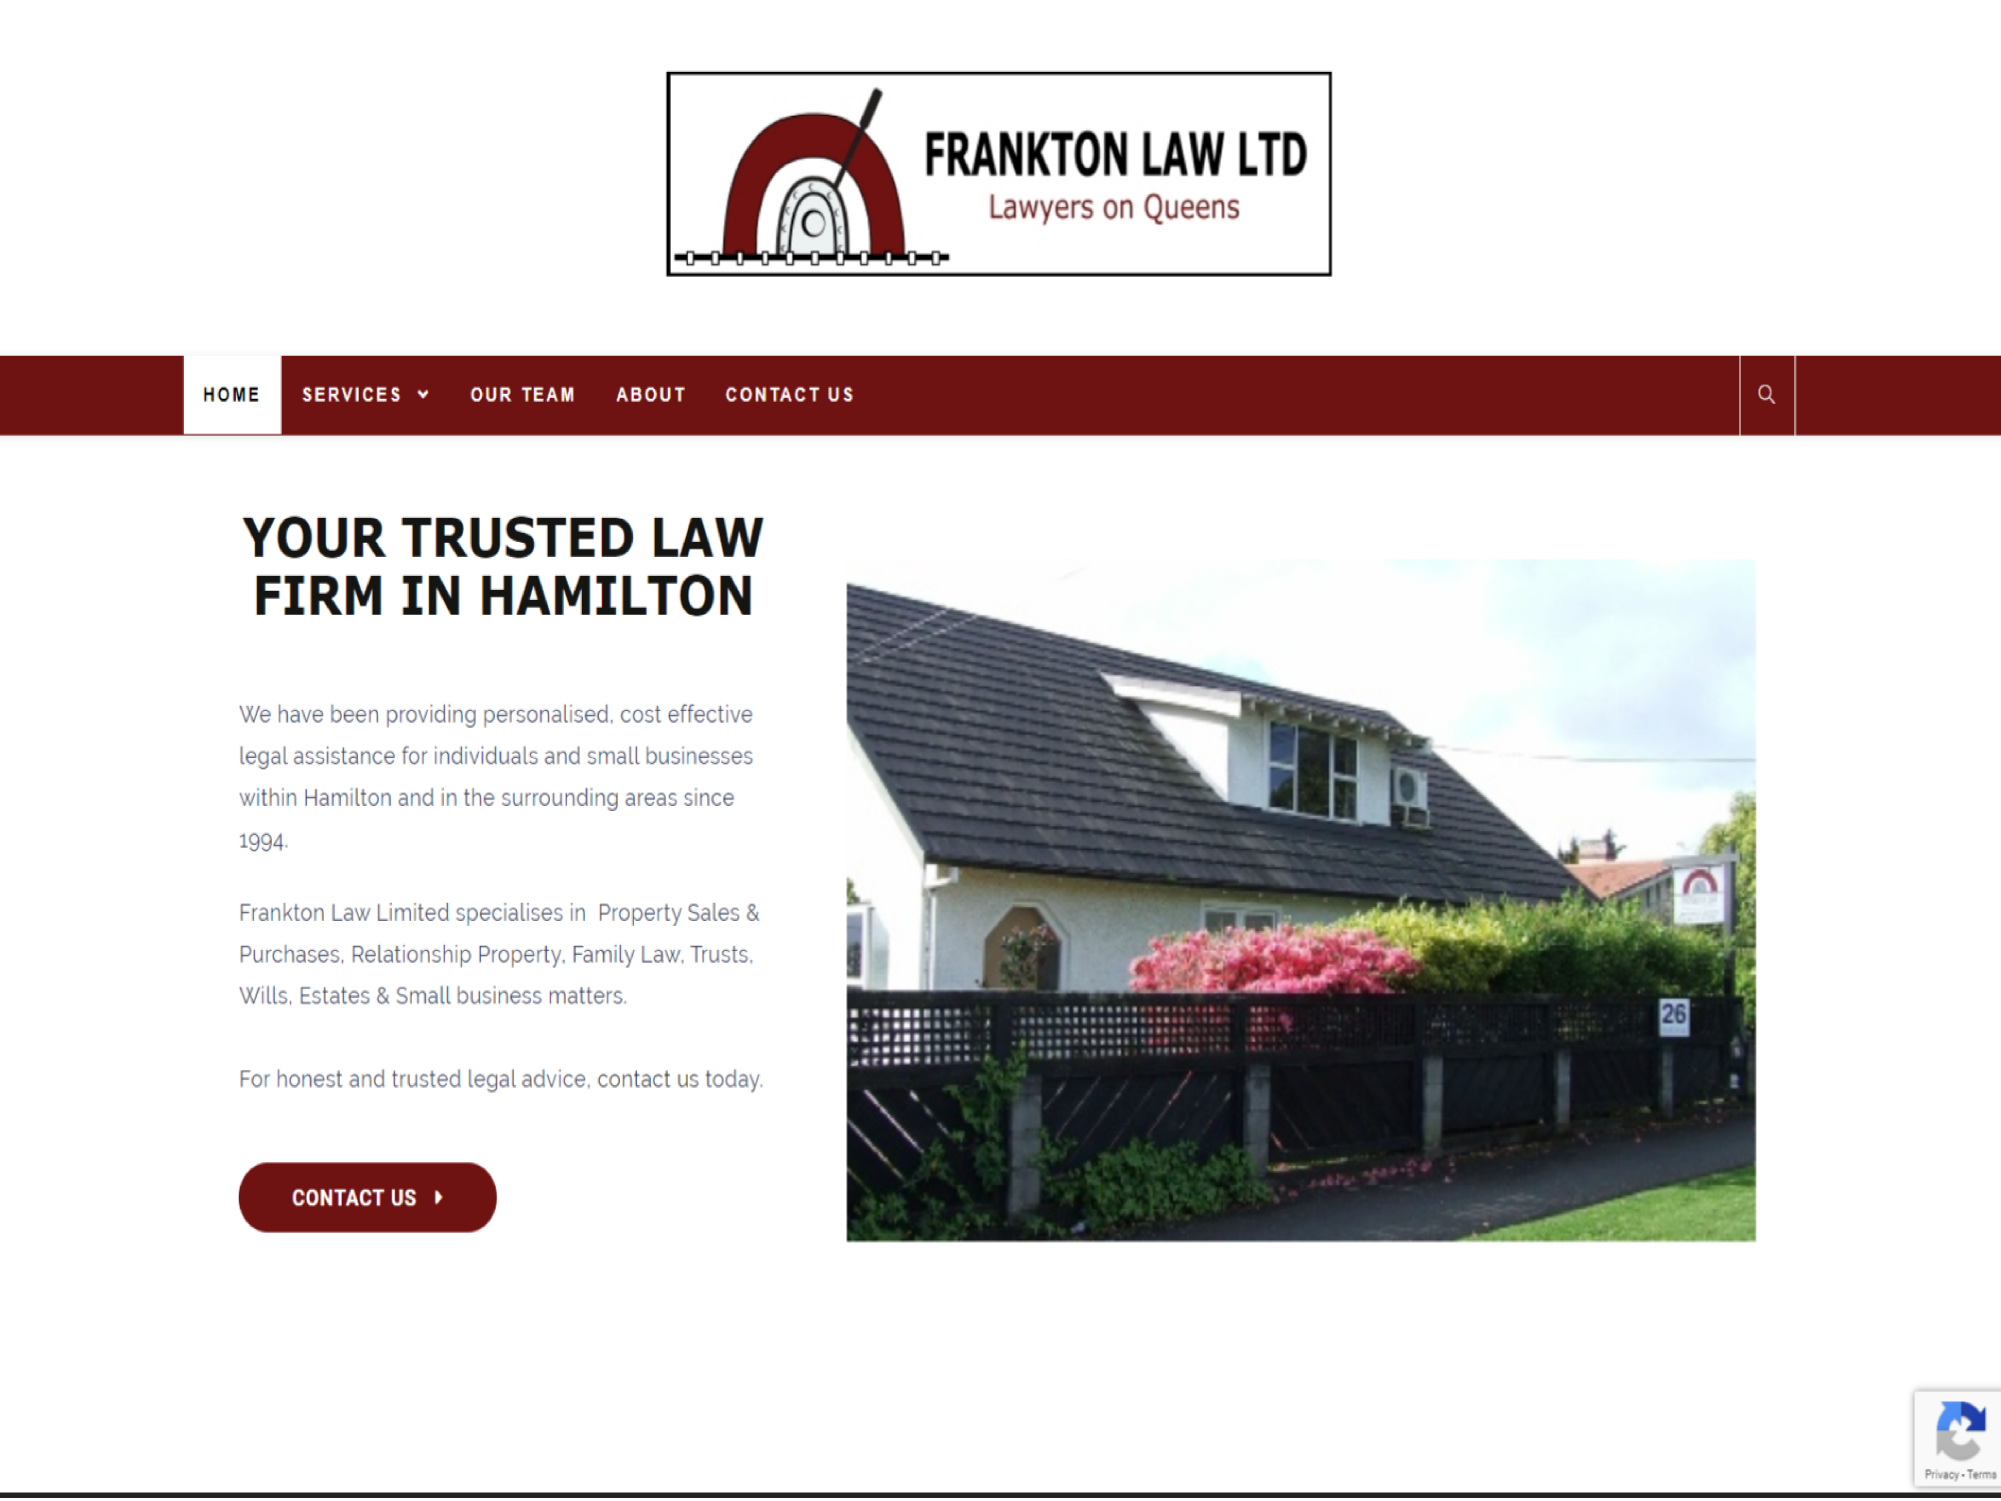 Frankton Law Ltd